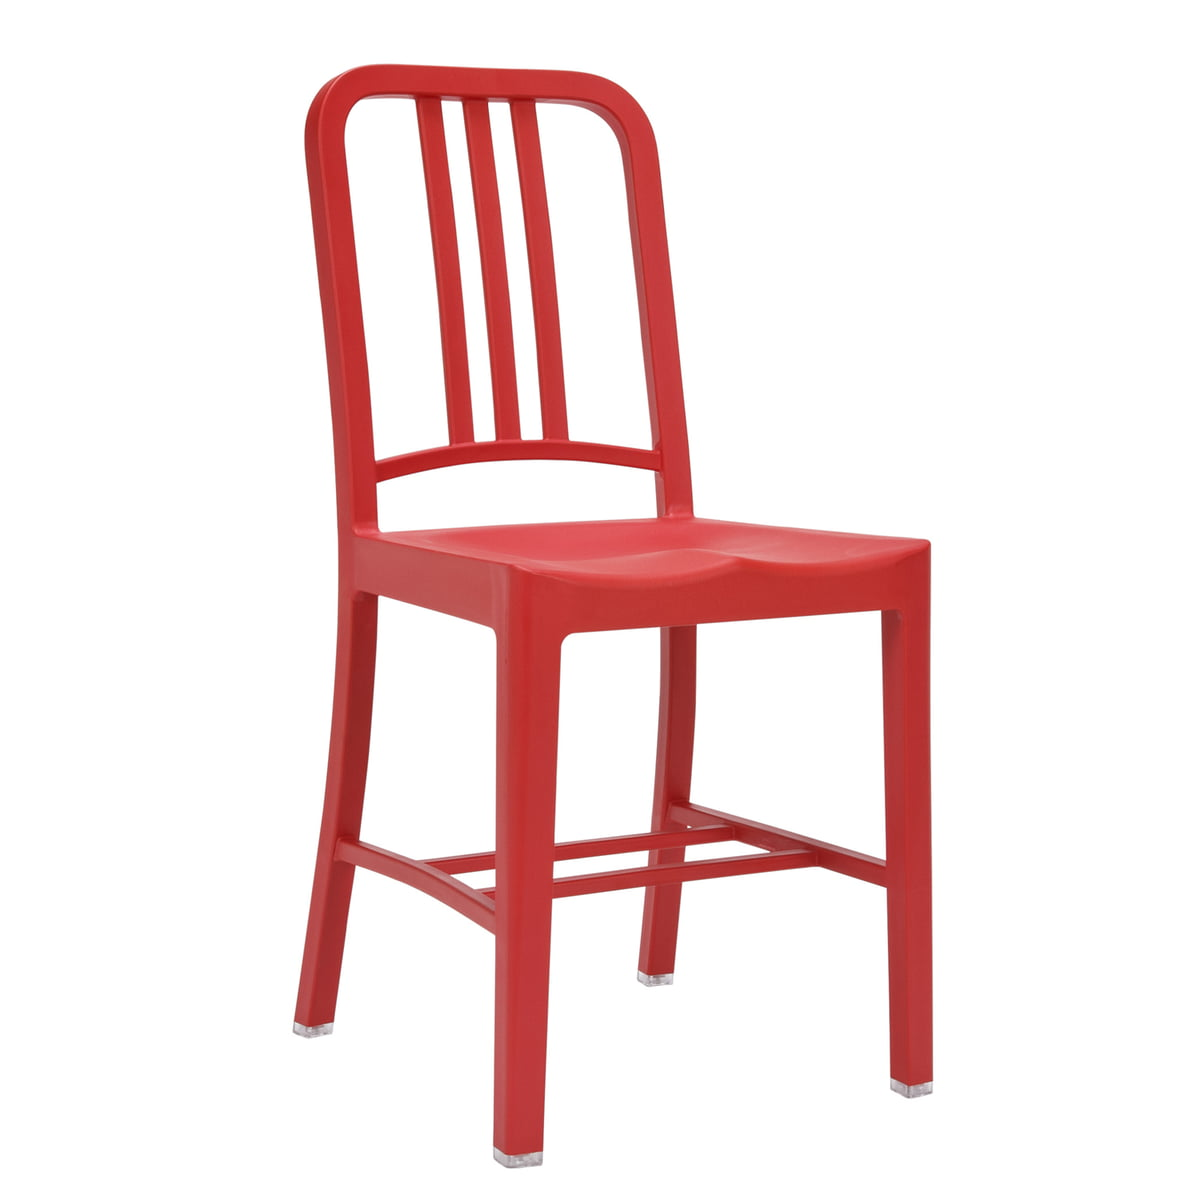 navy cocacola chair  emeco  shop - emeco   navy cocacola chair